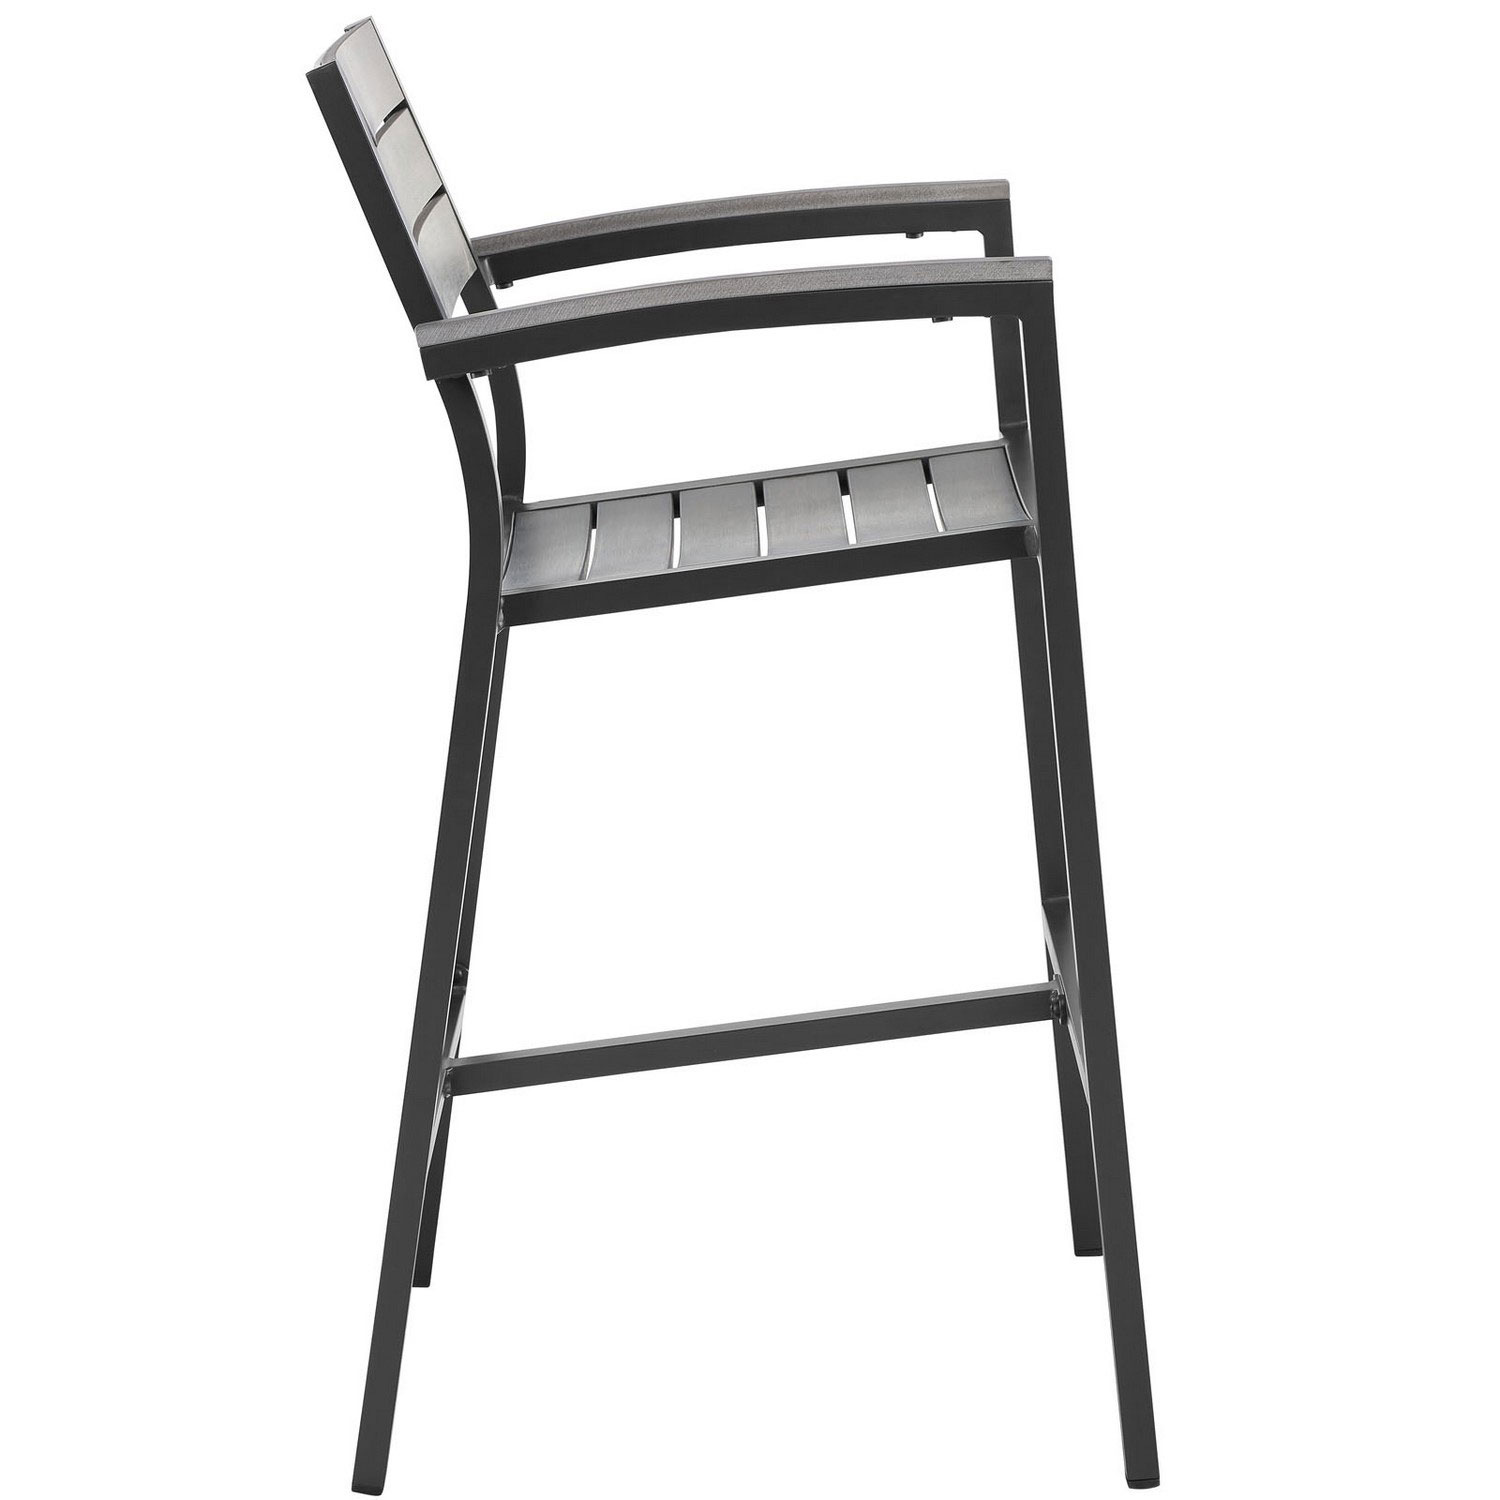 Modway Maine Bar Stool Outdoor Patio Set of 2 - Brown/Gray